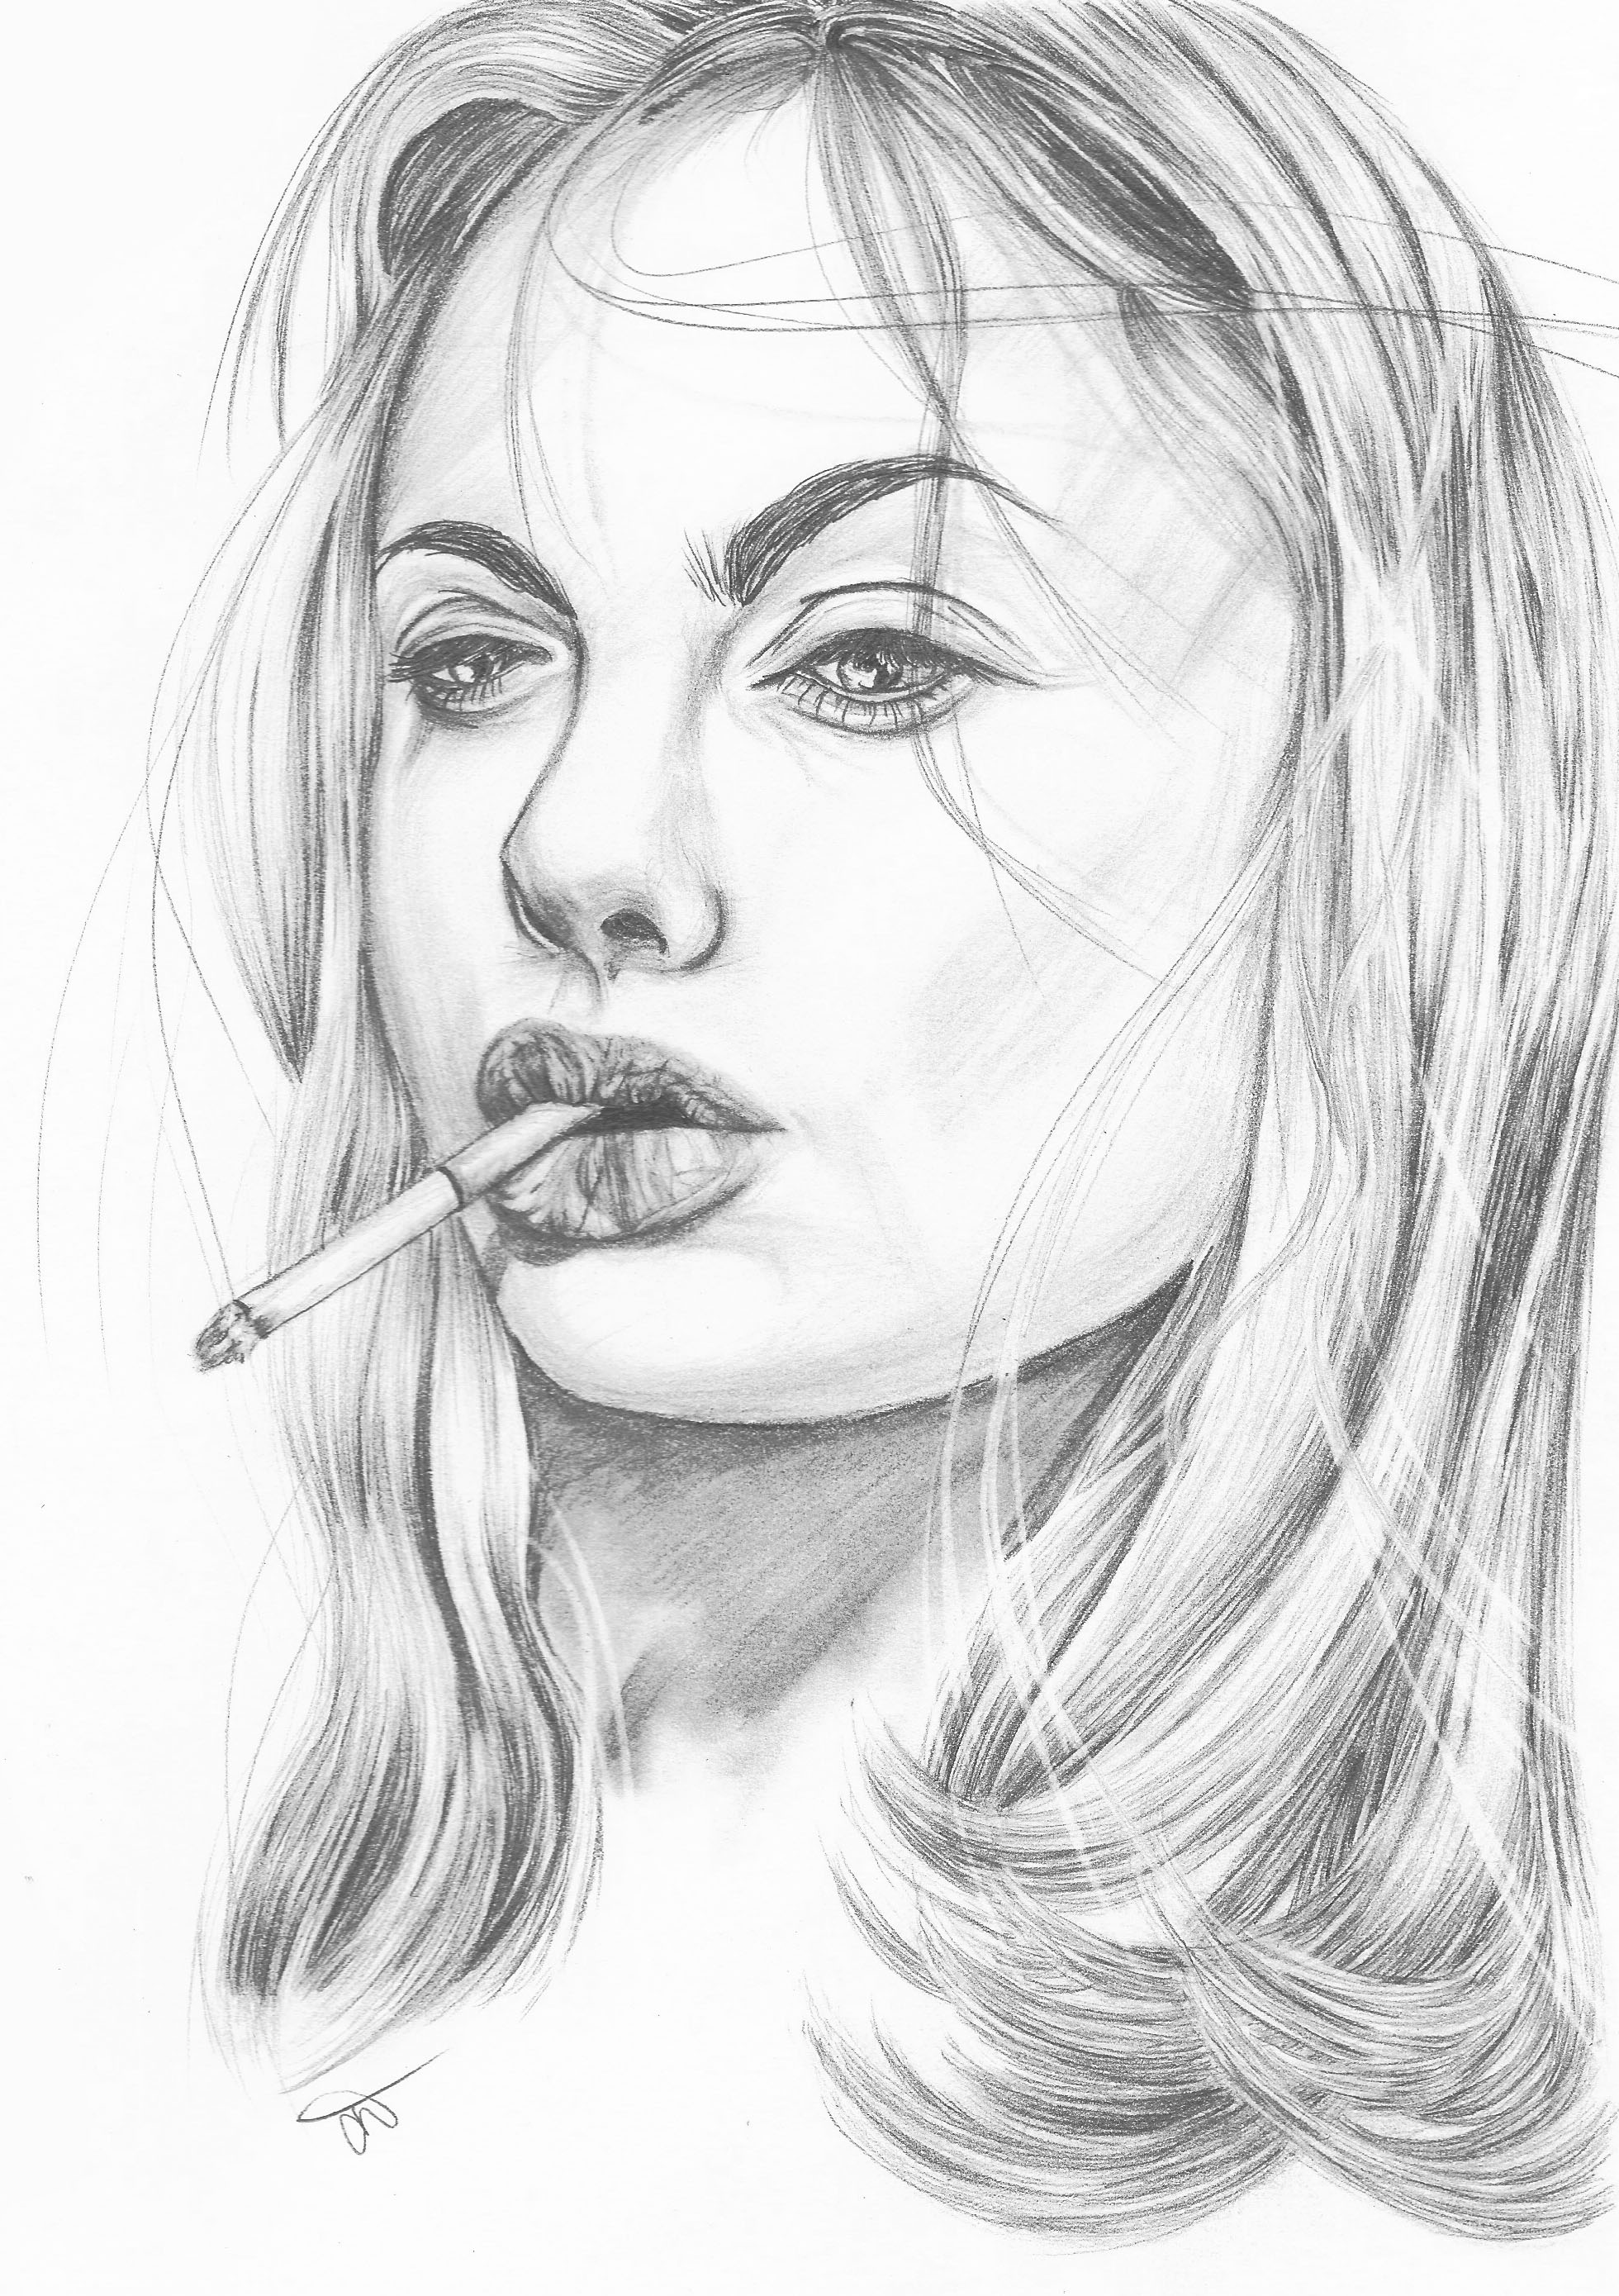 angeline jolie from girl interrupted pencil drawing